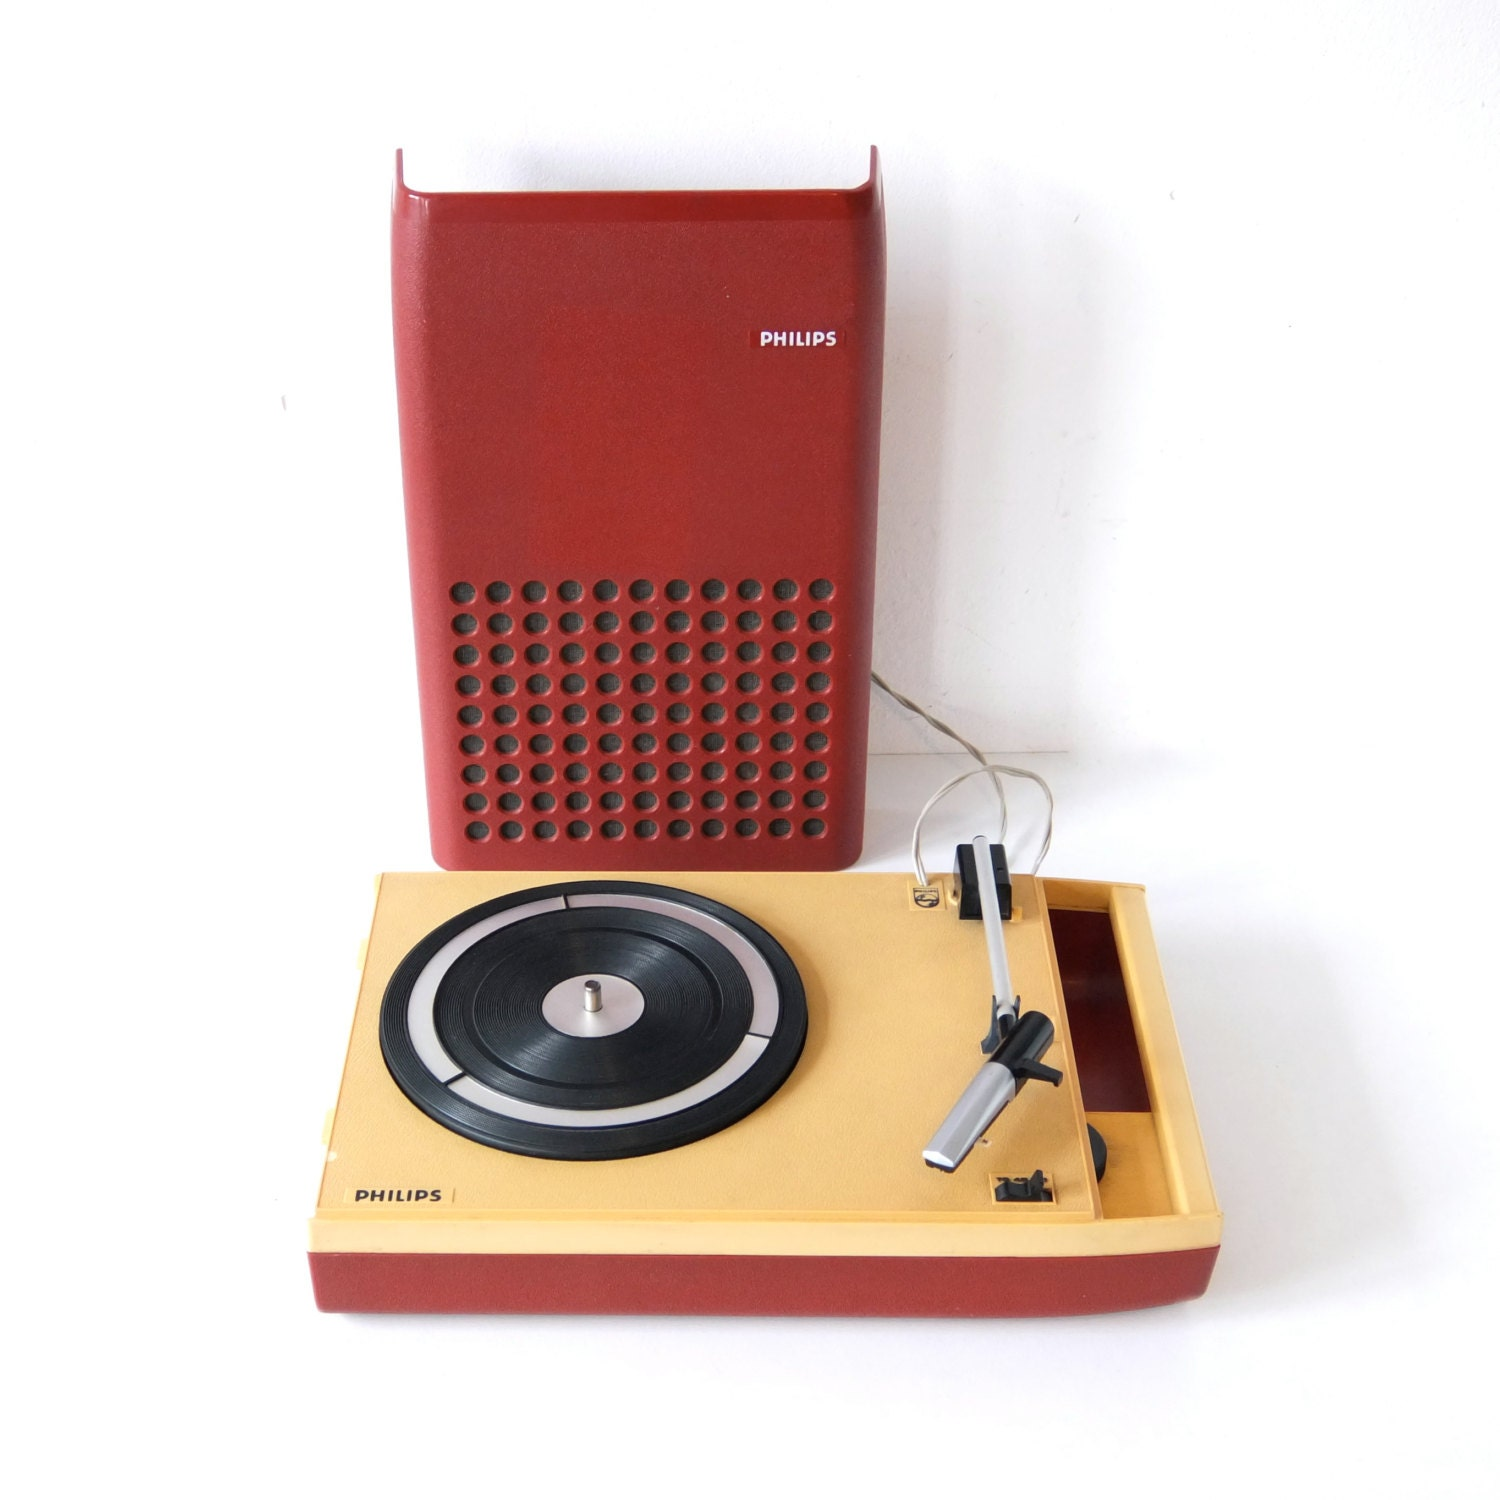 Portable Record Player As Seen On Shark Tank Portable Gas Stove Uk Portable Ssd X5 External Hard Drive Portable Vacuum Ace Hardware: Vintage Philips 113 Playsound Portable Record